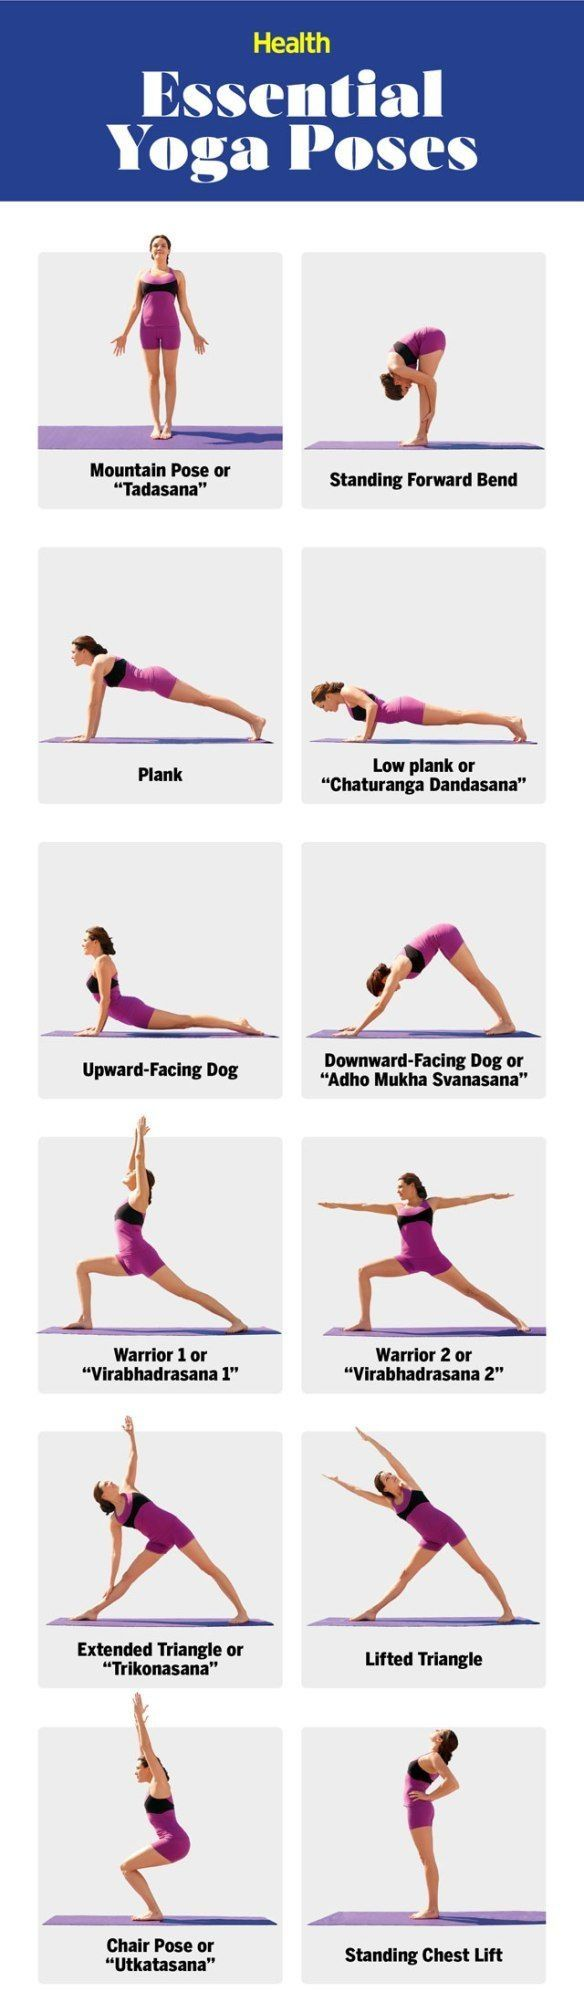 The Ultimate Guide to Yoga Lingo – Health News / Tips & Trends / Celebrity Health